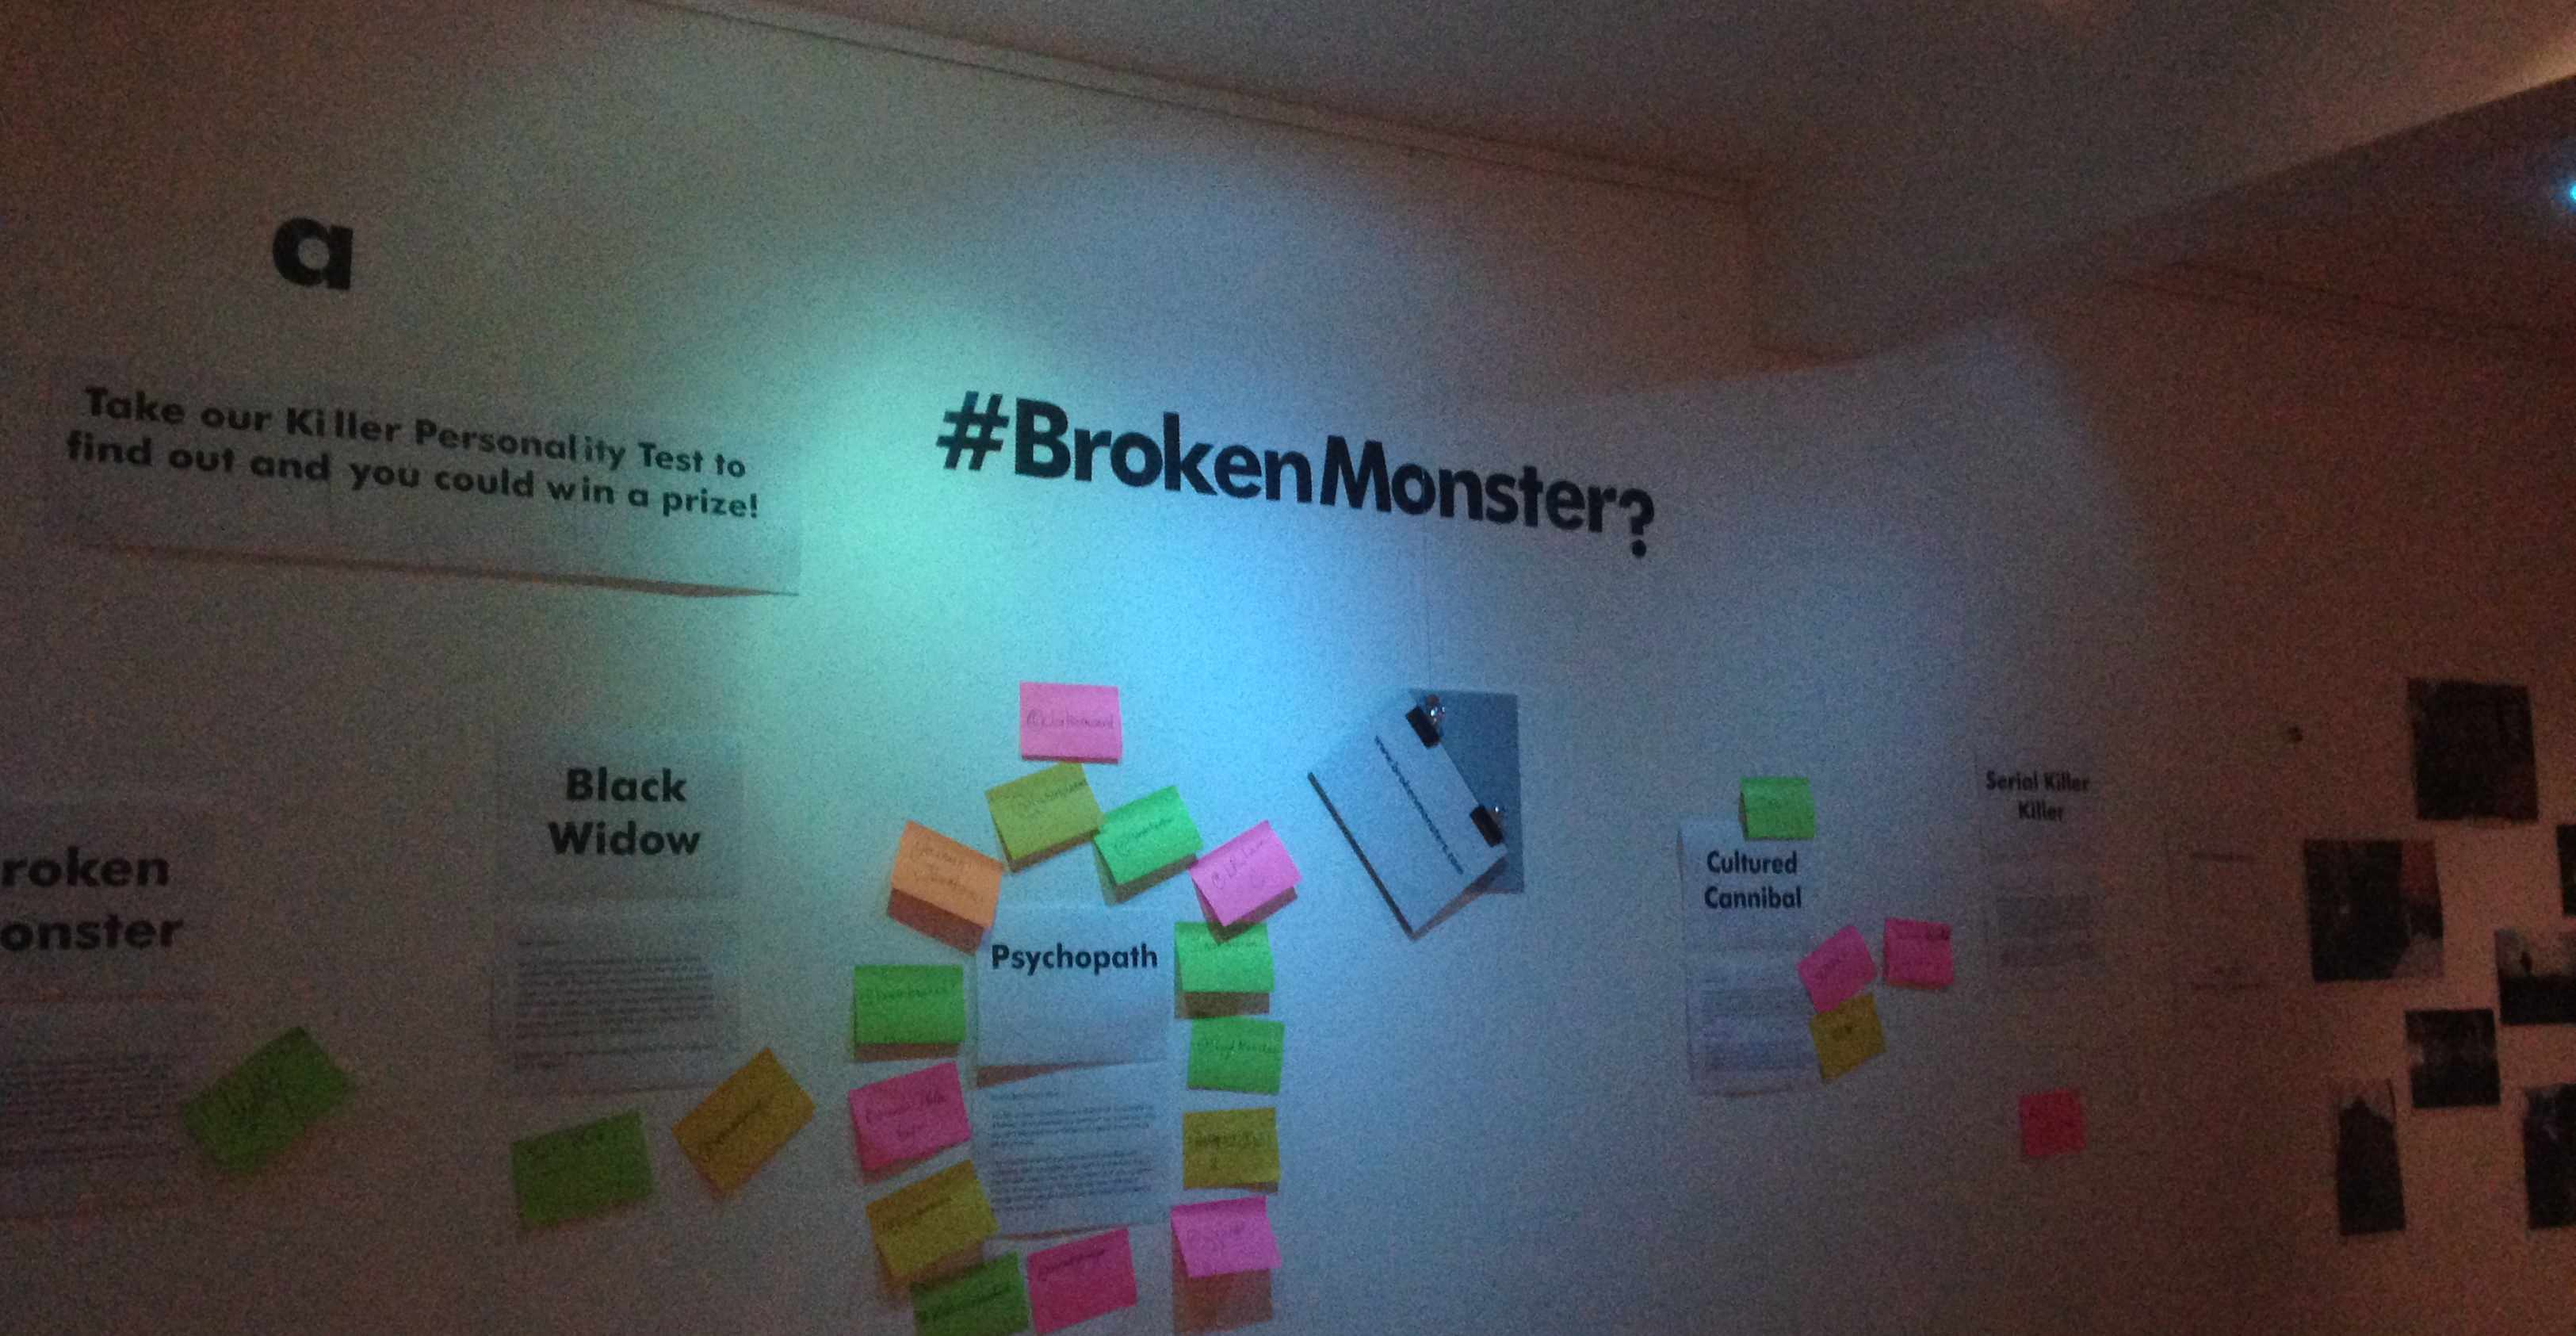 broken monsters launch party in the uk lauren beukes lauren beukes killer personality quiz